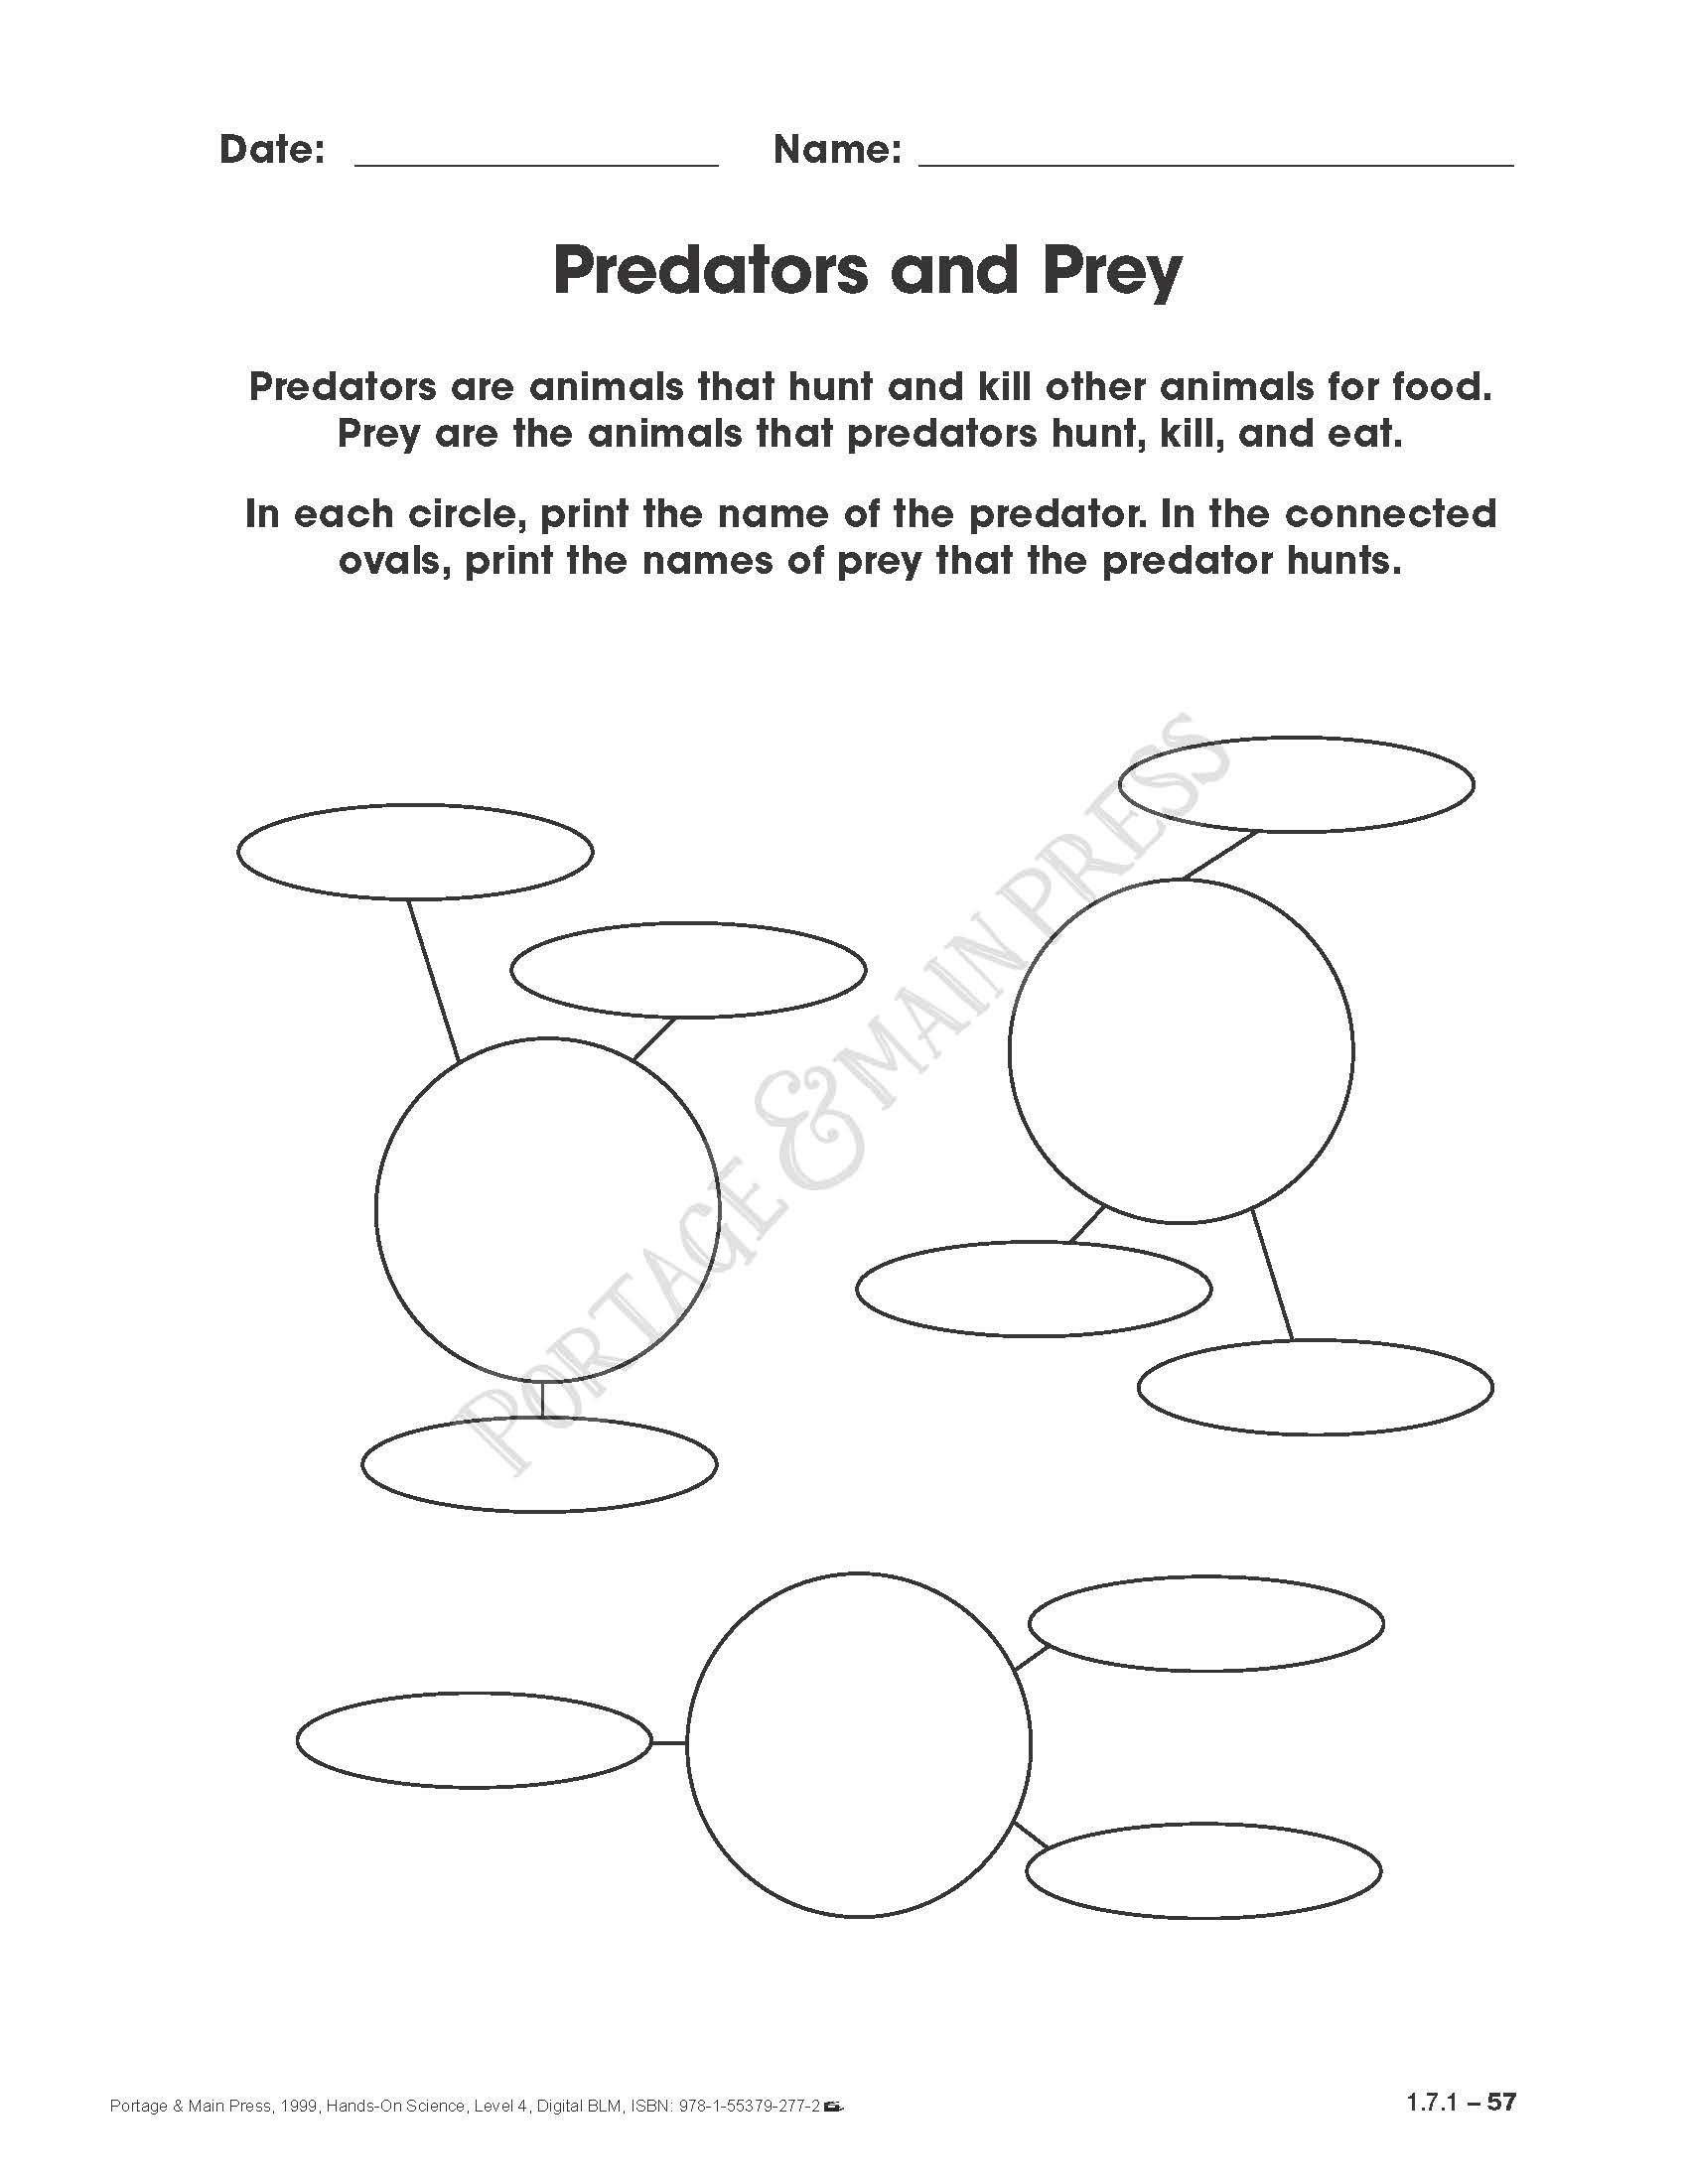 Predator Prey Worksheet High School Portage & Main Press Educational Books for Teachers